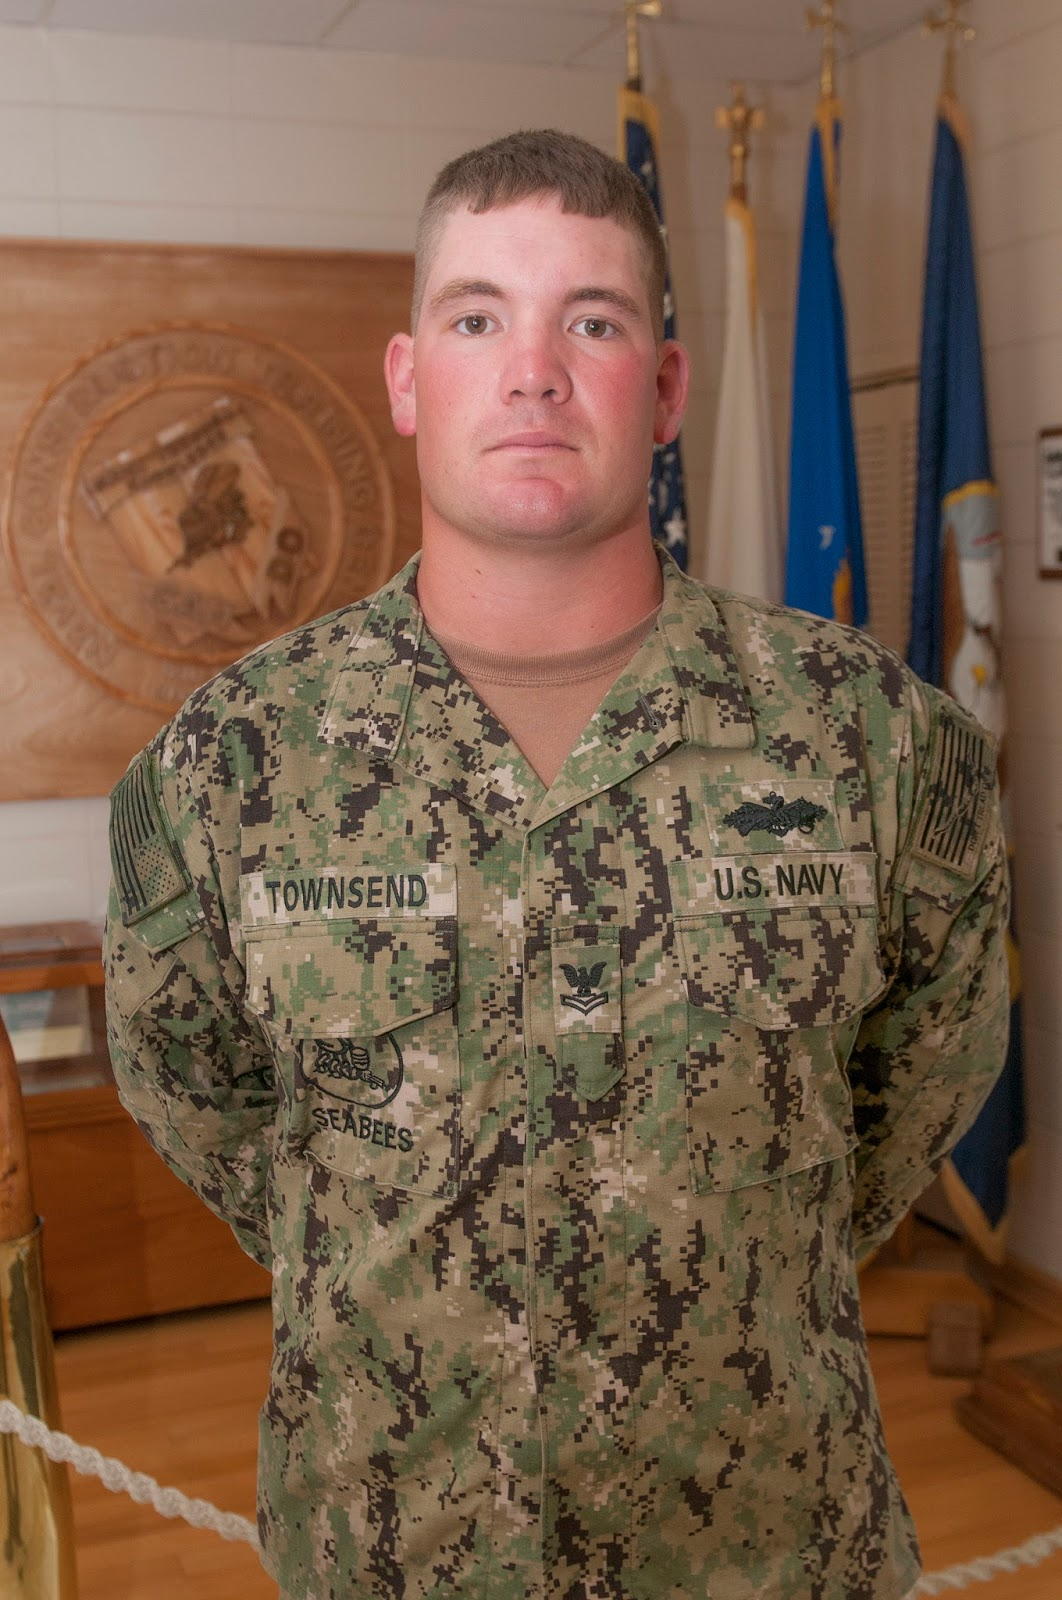 Winter Garden Sailor continues 75 years of Seabee tradition ...